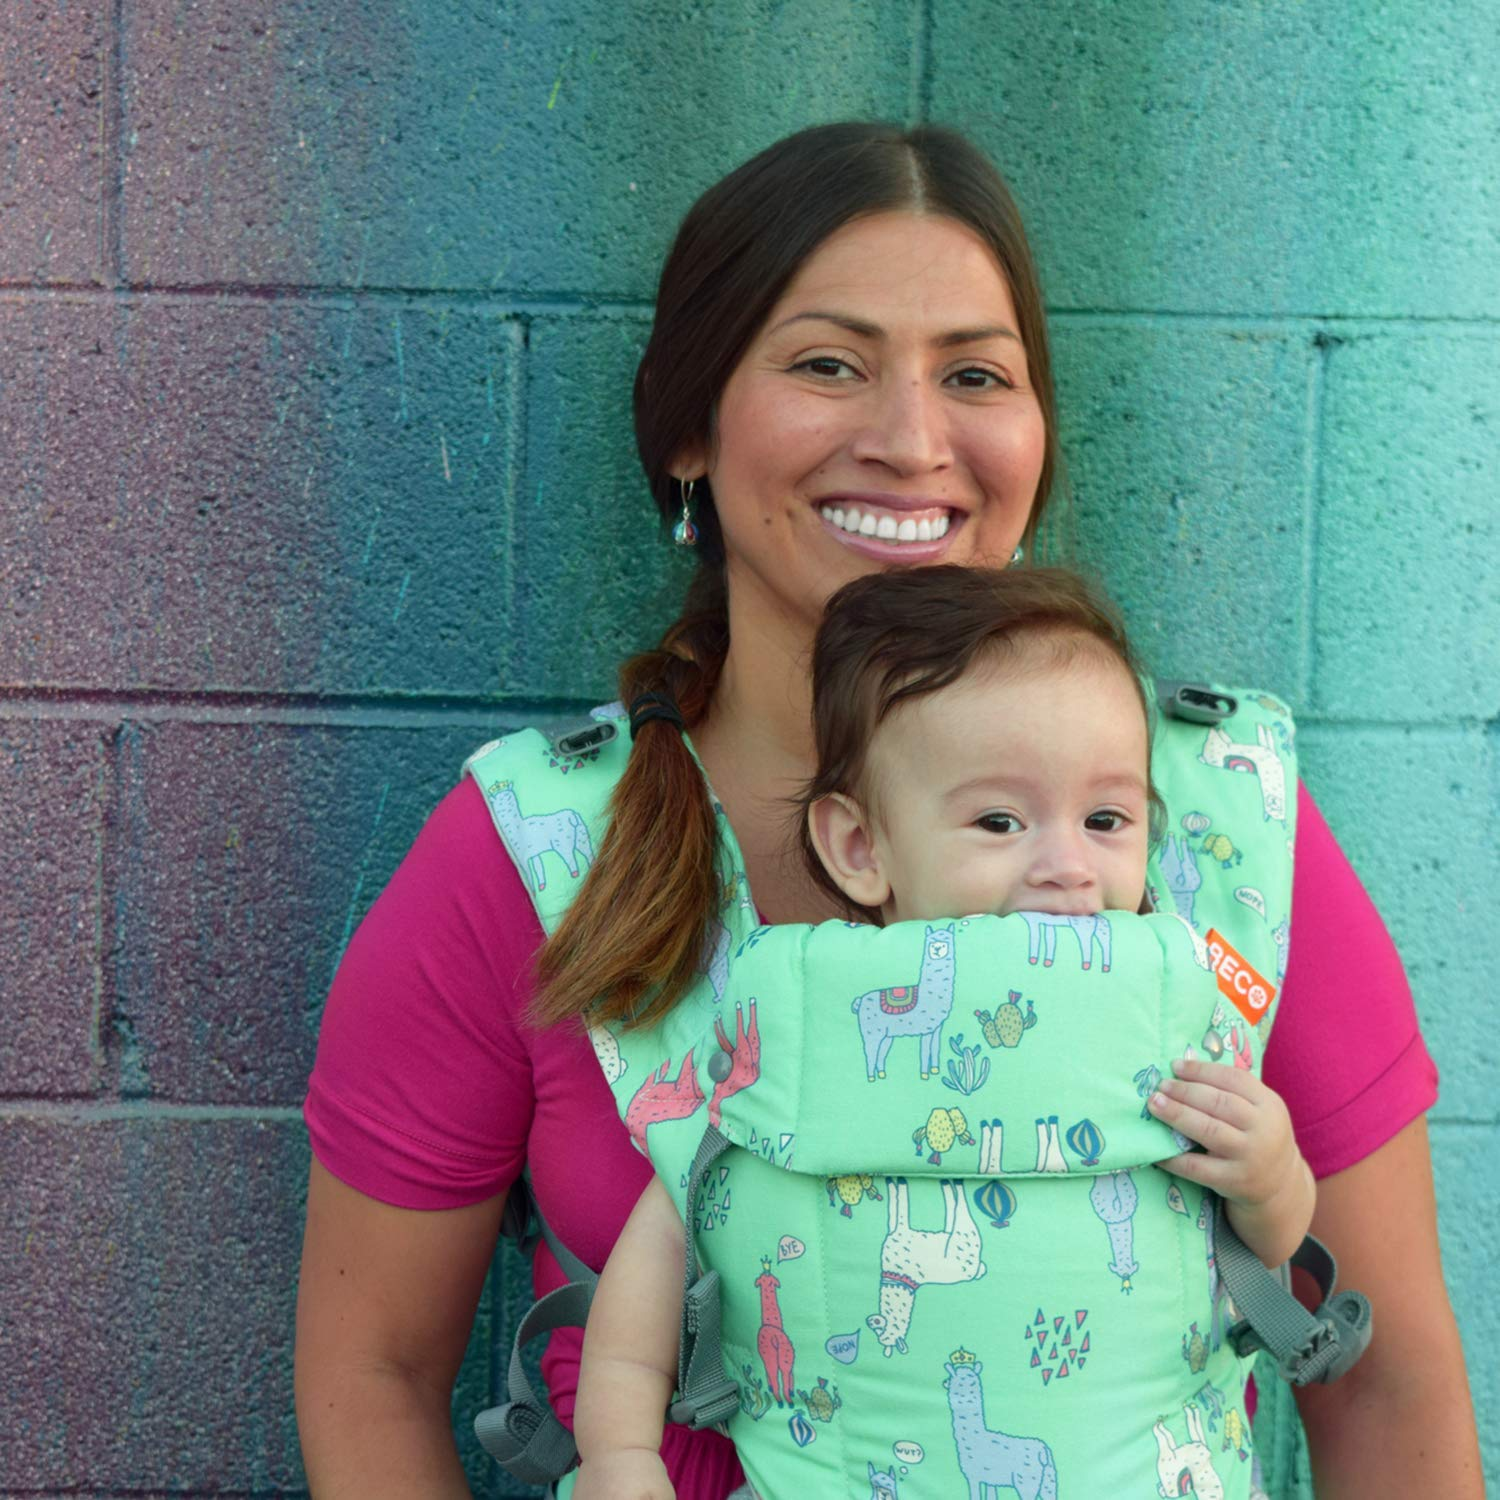 Beco Gemini Baby Carrier Geo Dusty Pink Infants and Child from 7-35 lbs Certified Ergonomic Sleek and Simple 5-in-1 All Position Backpack Style Sling for Holding Babies